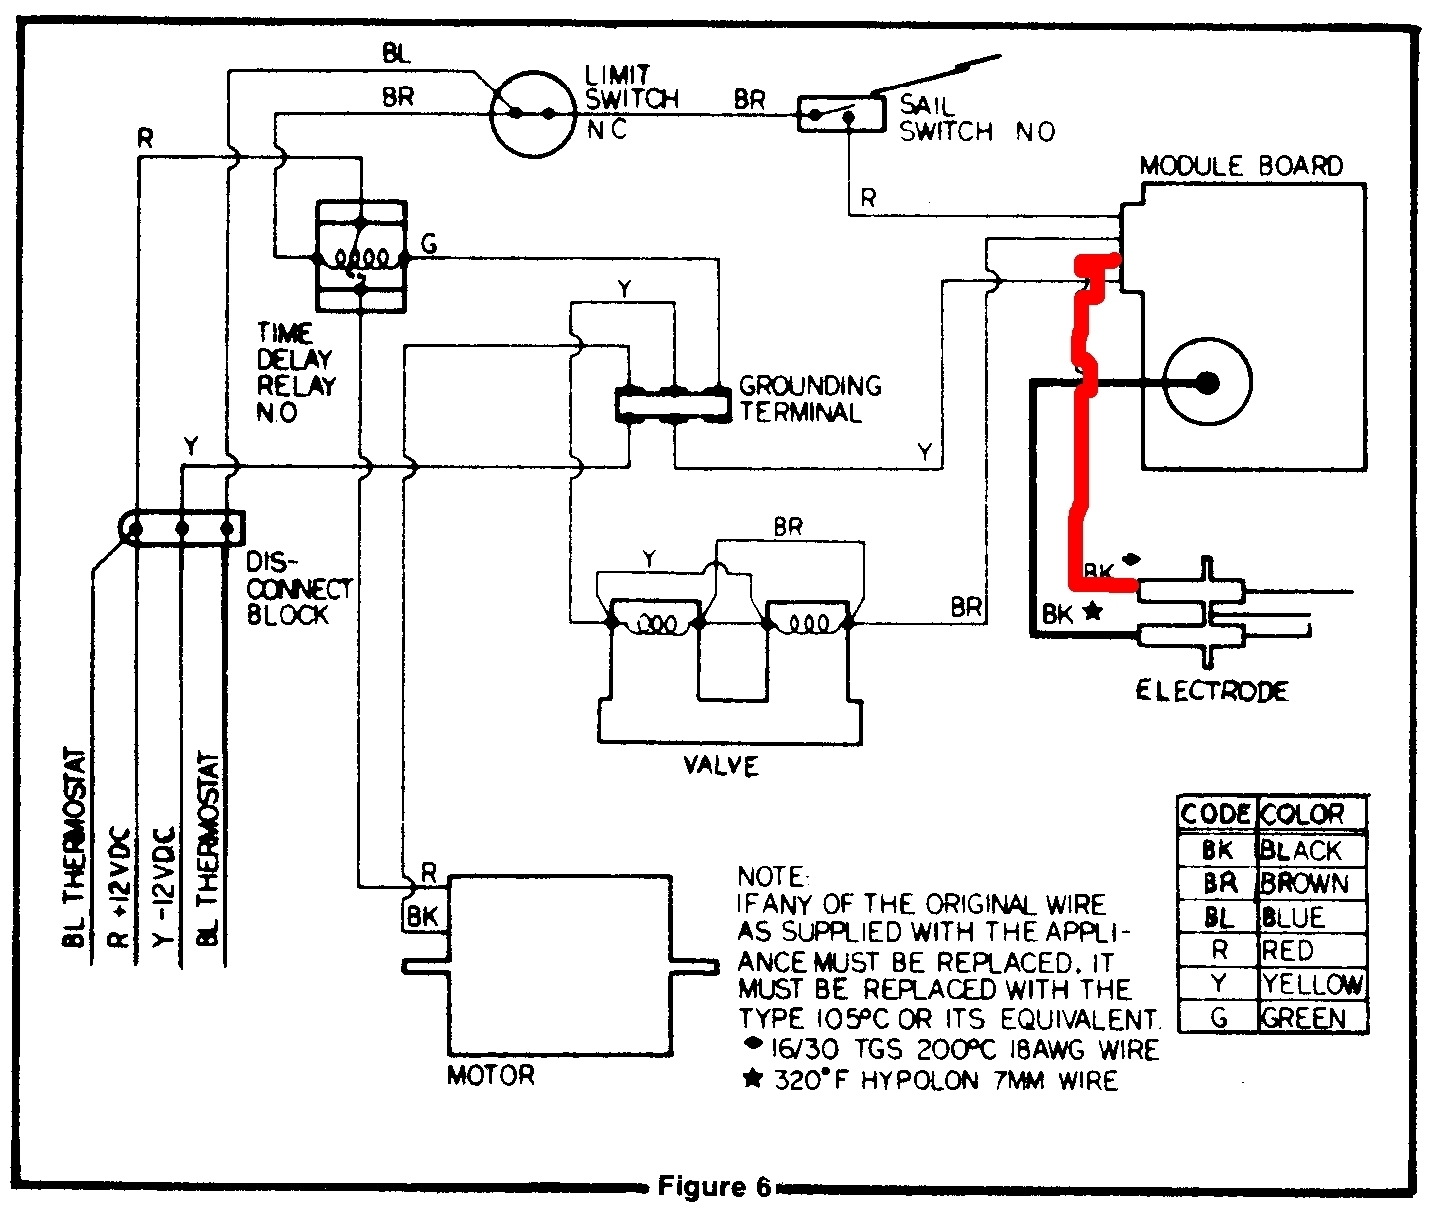 DIAGRAM] Duo Therm Thermostat Wiring Diagram 3107612 FULL ... on